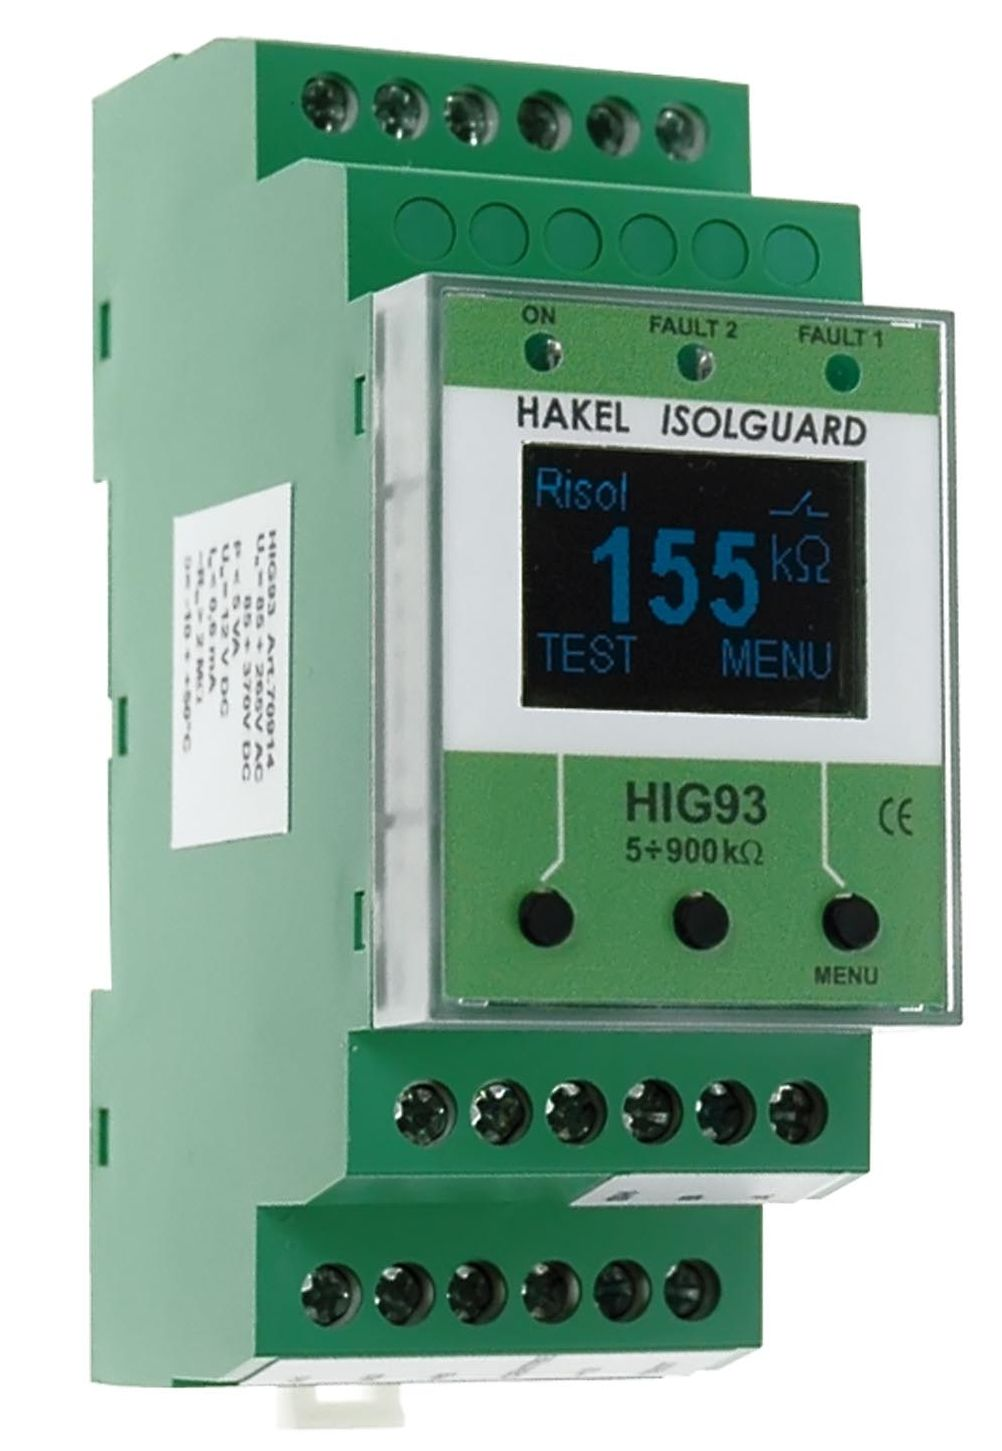 HIG - insulation monitoring device